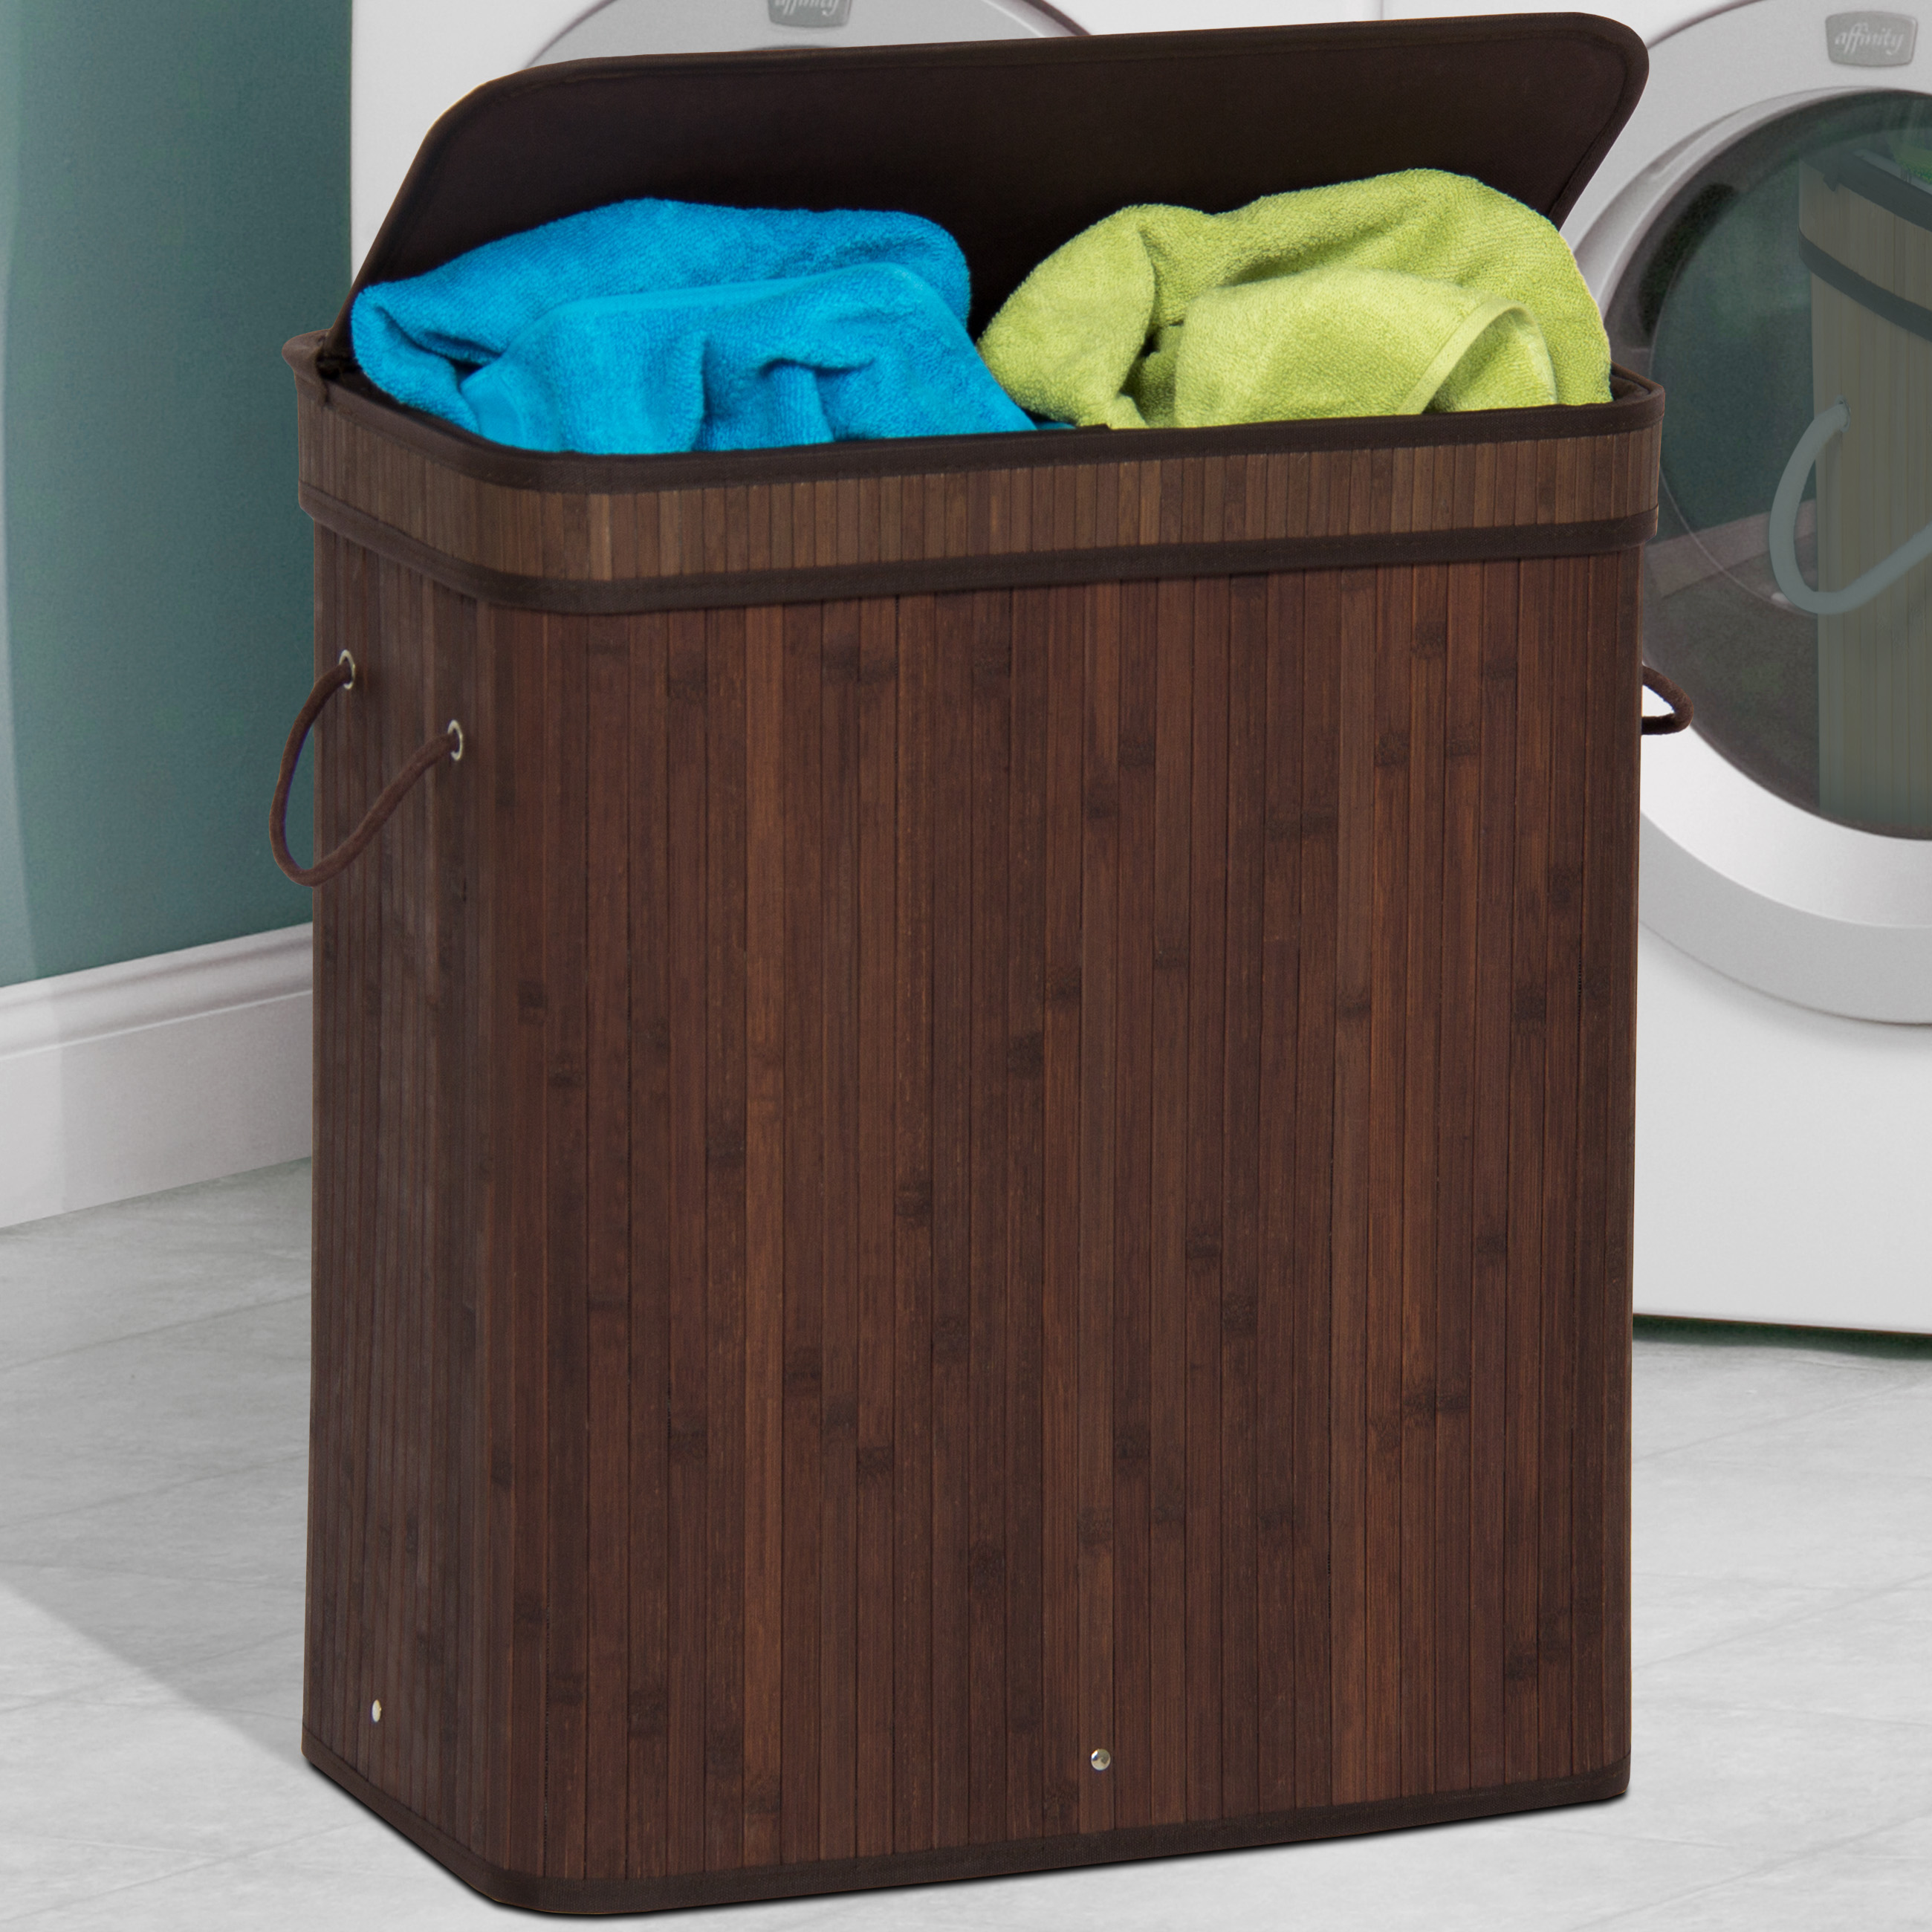 Best Choice Products Bamboo Double Hamper Laundry Basket Dark Brown by